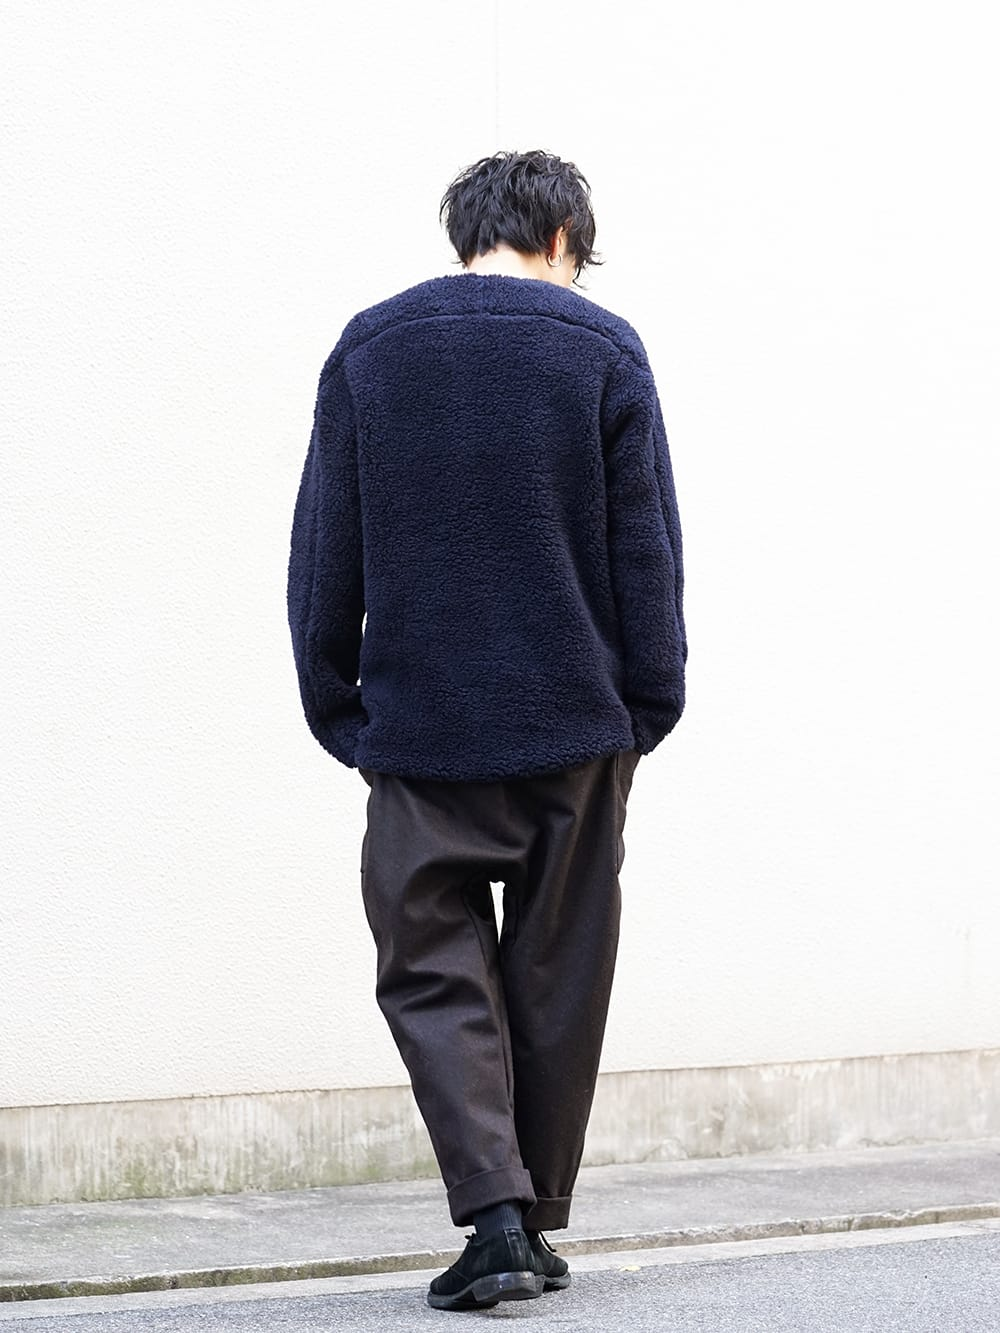 ware × ZIGGYCHEN New Items Styling by ANNASTESIA NAGOYA - 3-003